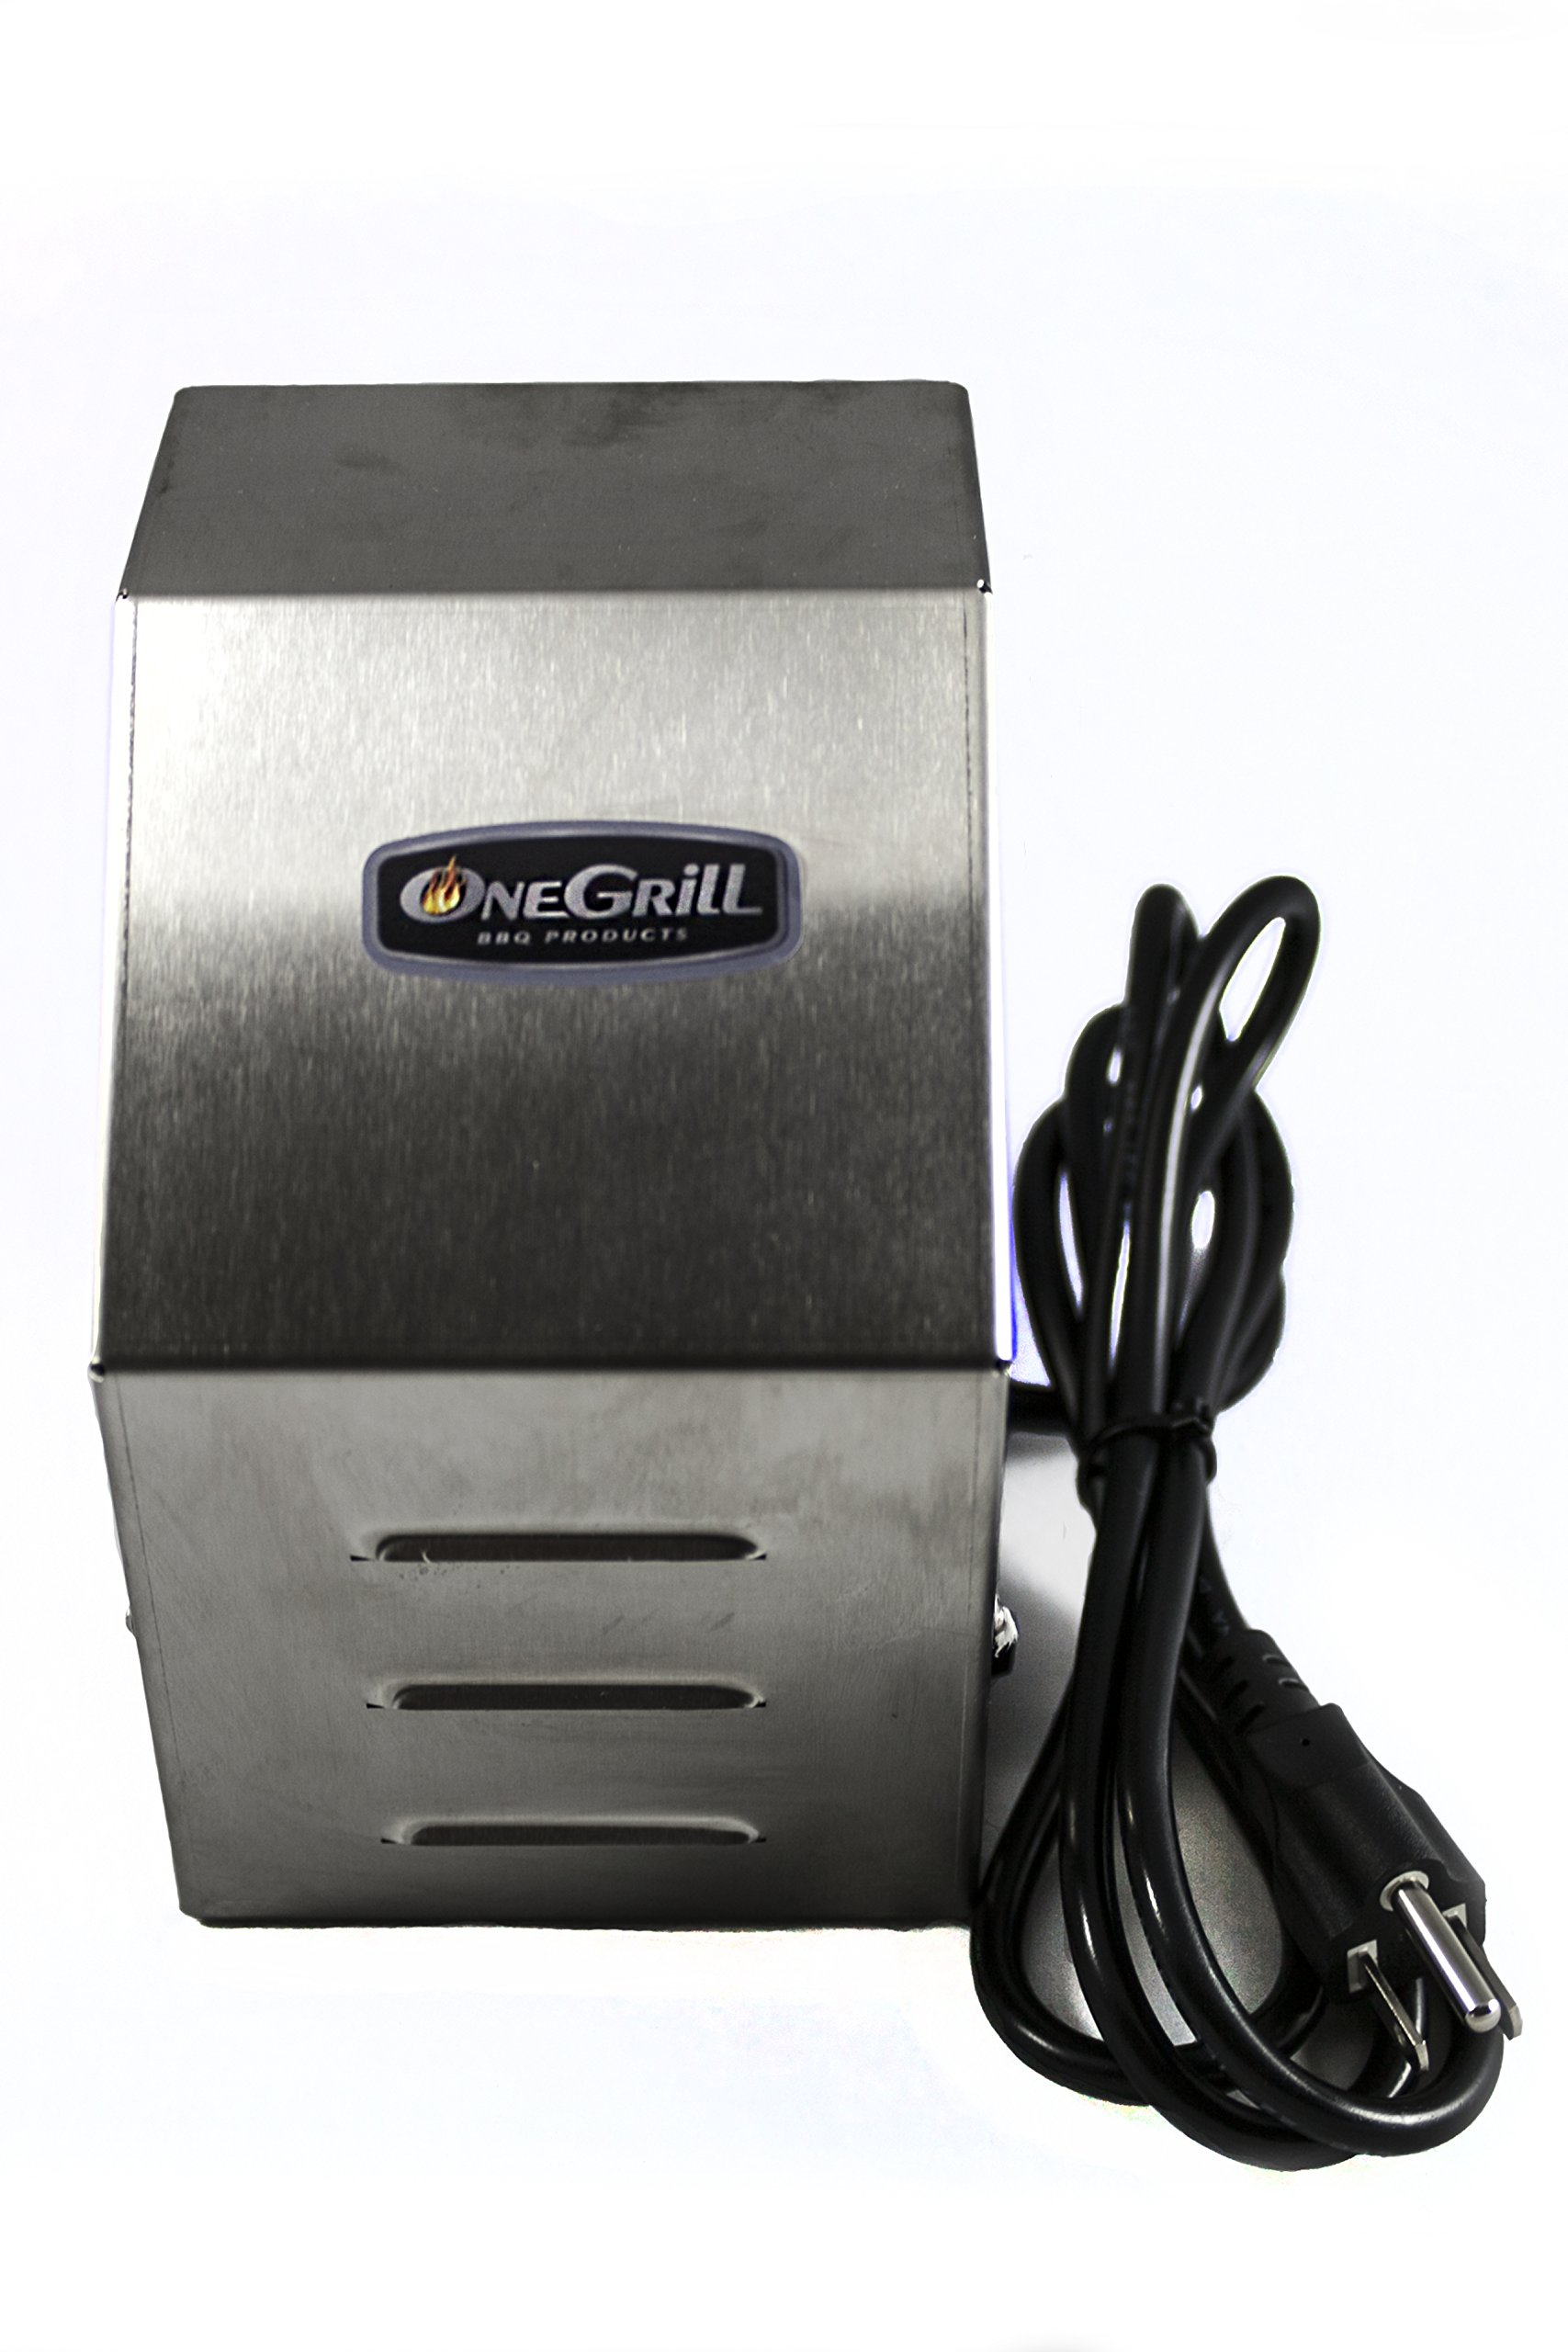 OneGrill Heavy Duty Stainless Steel Grill Rotisserie Motor by OneGrill BBQ Products